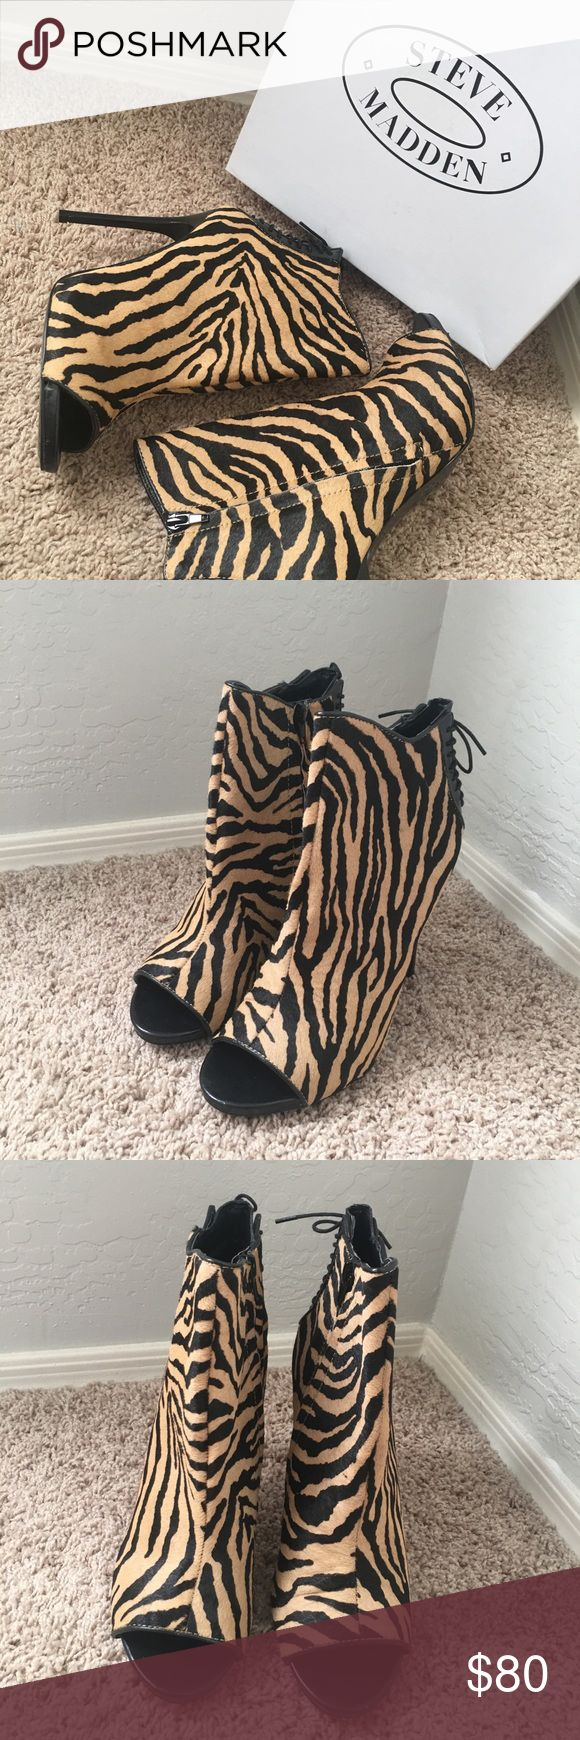 NWB Steve Madden Zebra Heels Fur animal print sandal bootie. For the woman who knows how to strut her stuff!  15% of this purchase will be donated to #TheHappyBraceletProject Steve Madden Shoes Ankle Boots & Booties